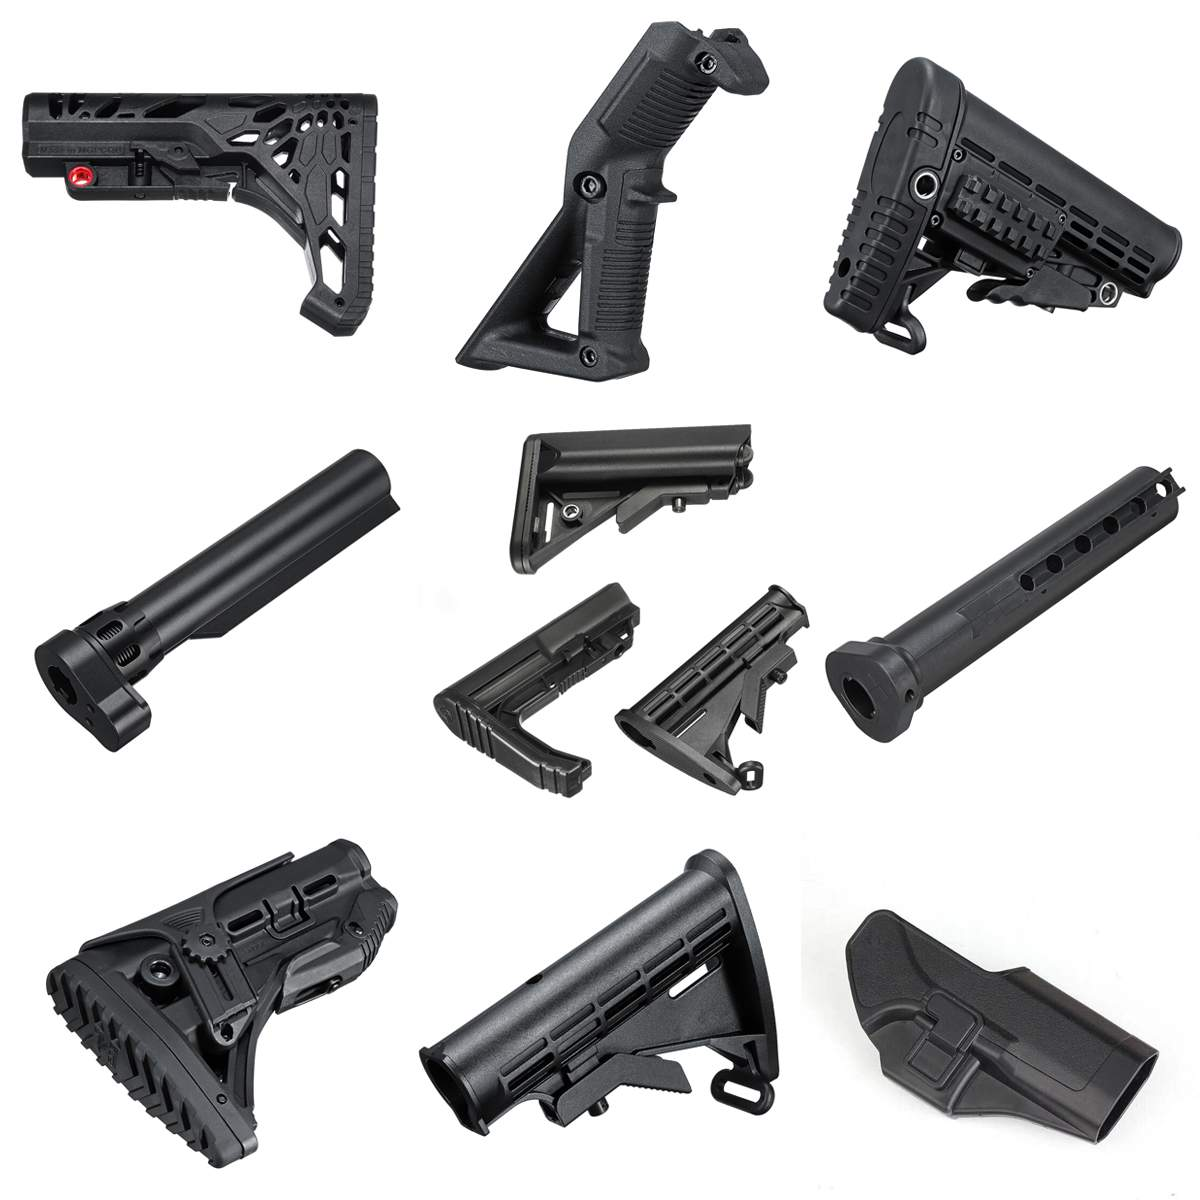 Nylon Stock/Handle Grip/Holster/Buffer Tube For JinMing 8th M4A1 Gel Ball Blastering Toy Guns